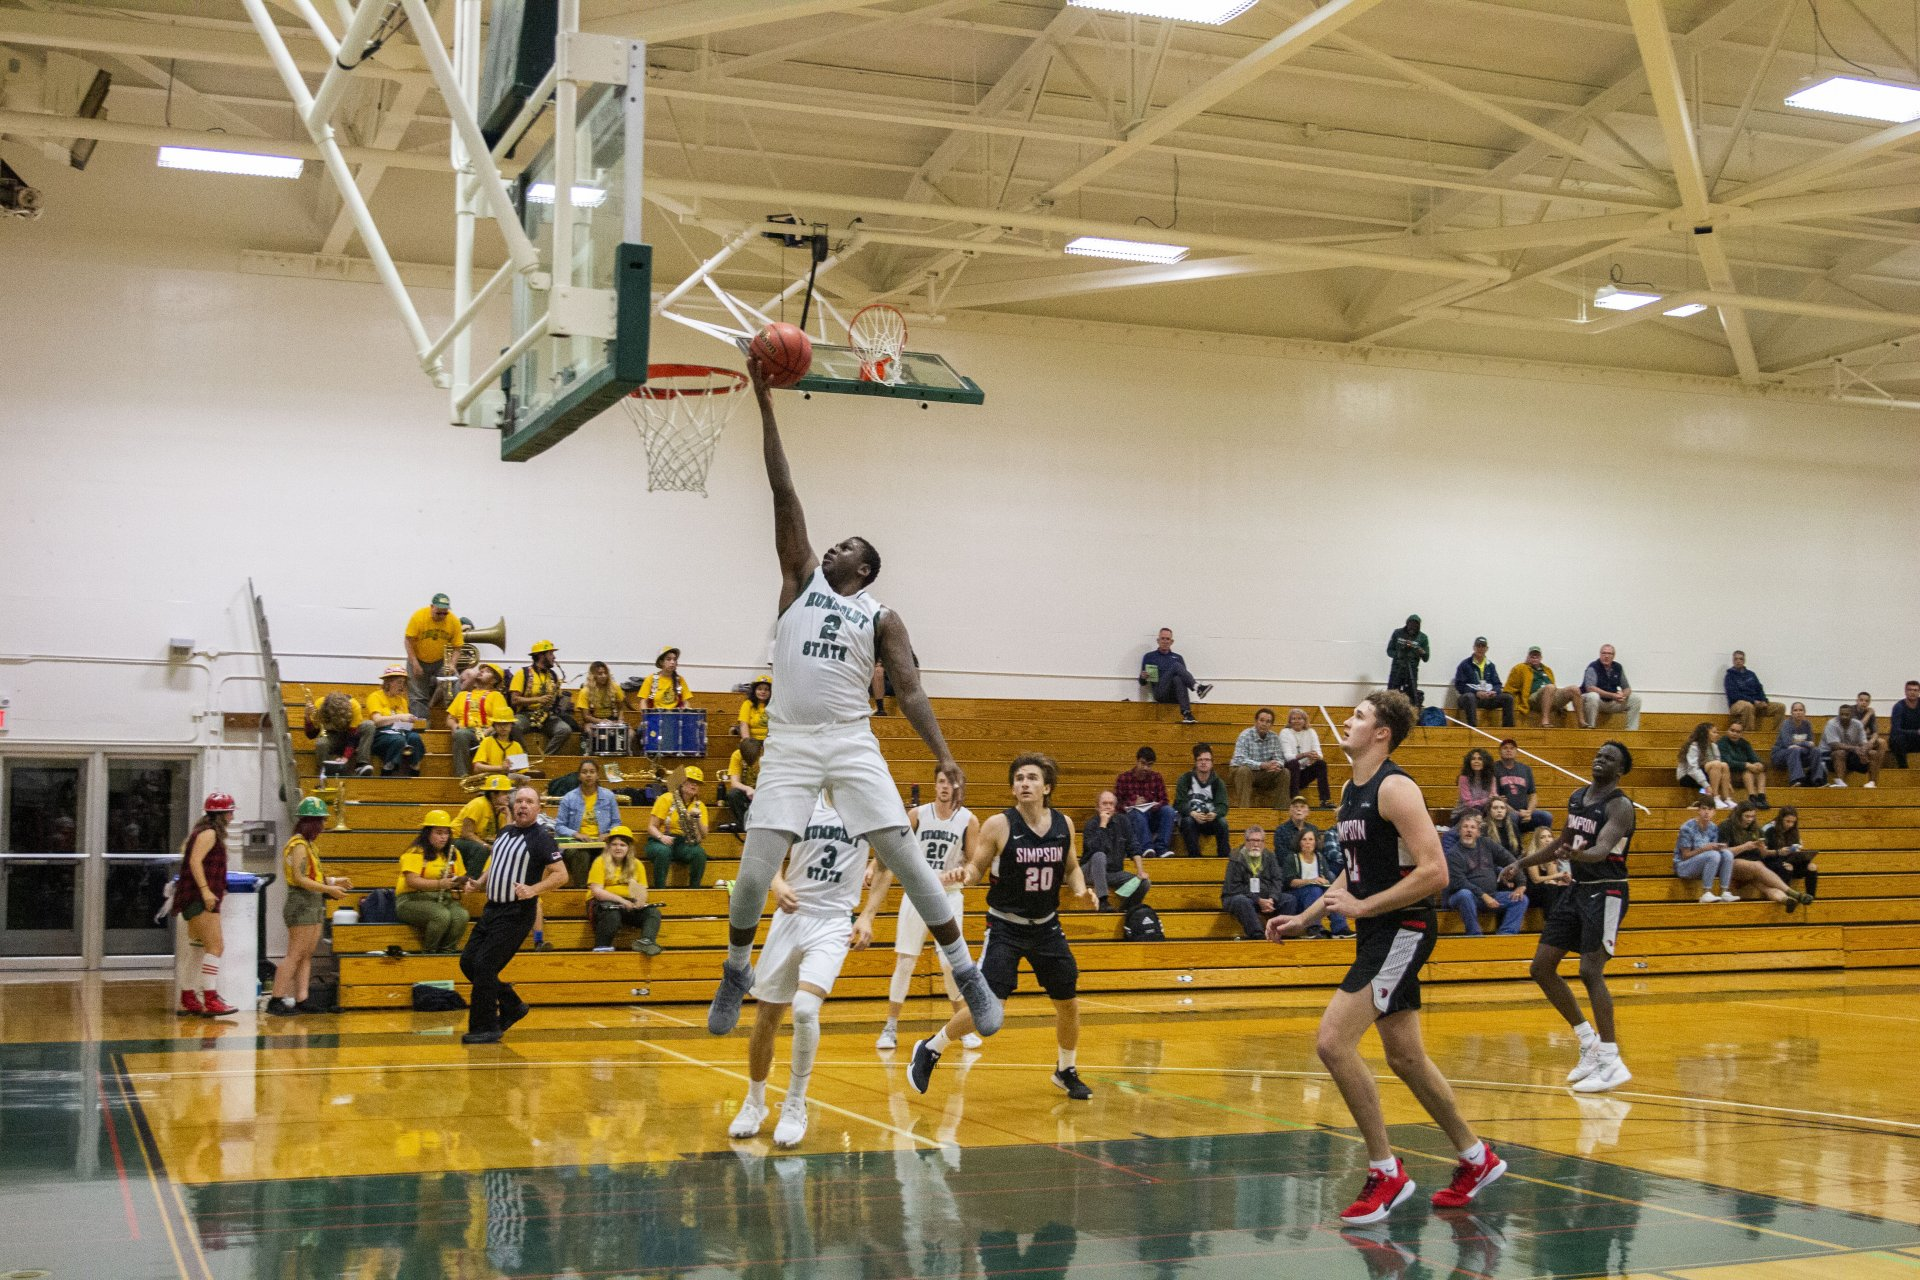 Humboldt State's Raysean Scott Jr. jumps up to dunk the ball during the men's basketball exhibition game against Simpson on October 25.